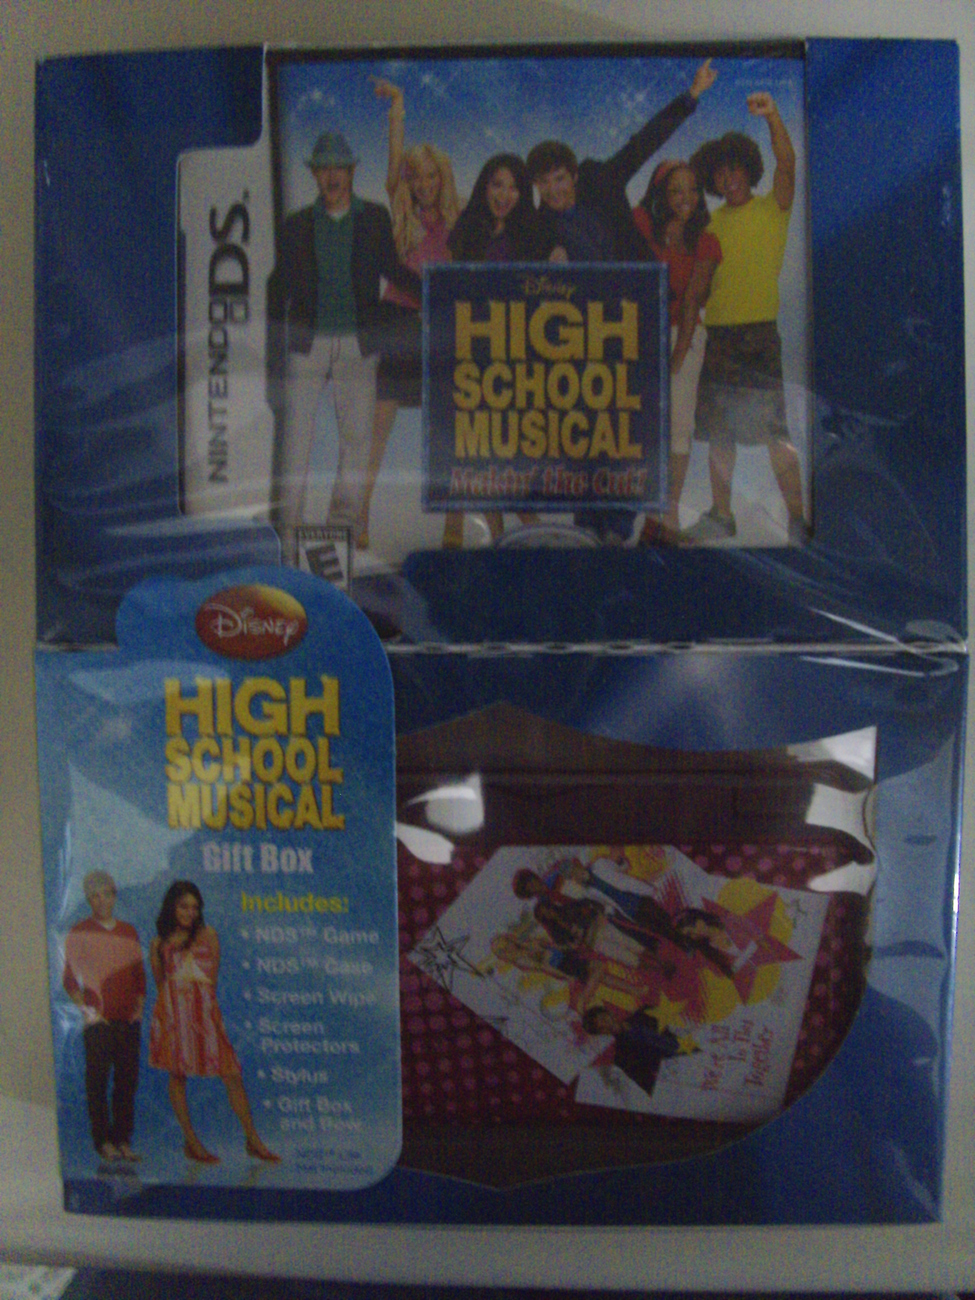 Disney High School Musical Makin' the Cut! Nintendo DS - New